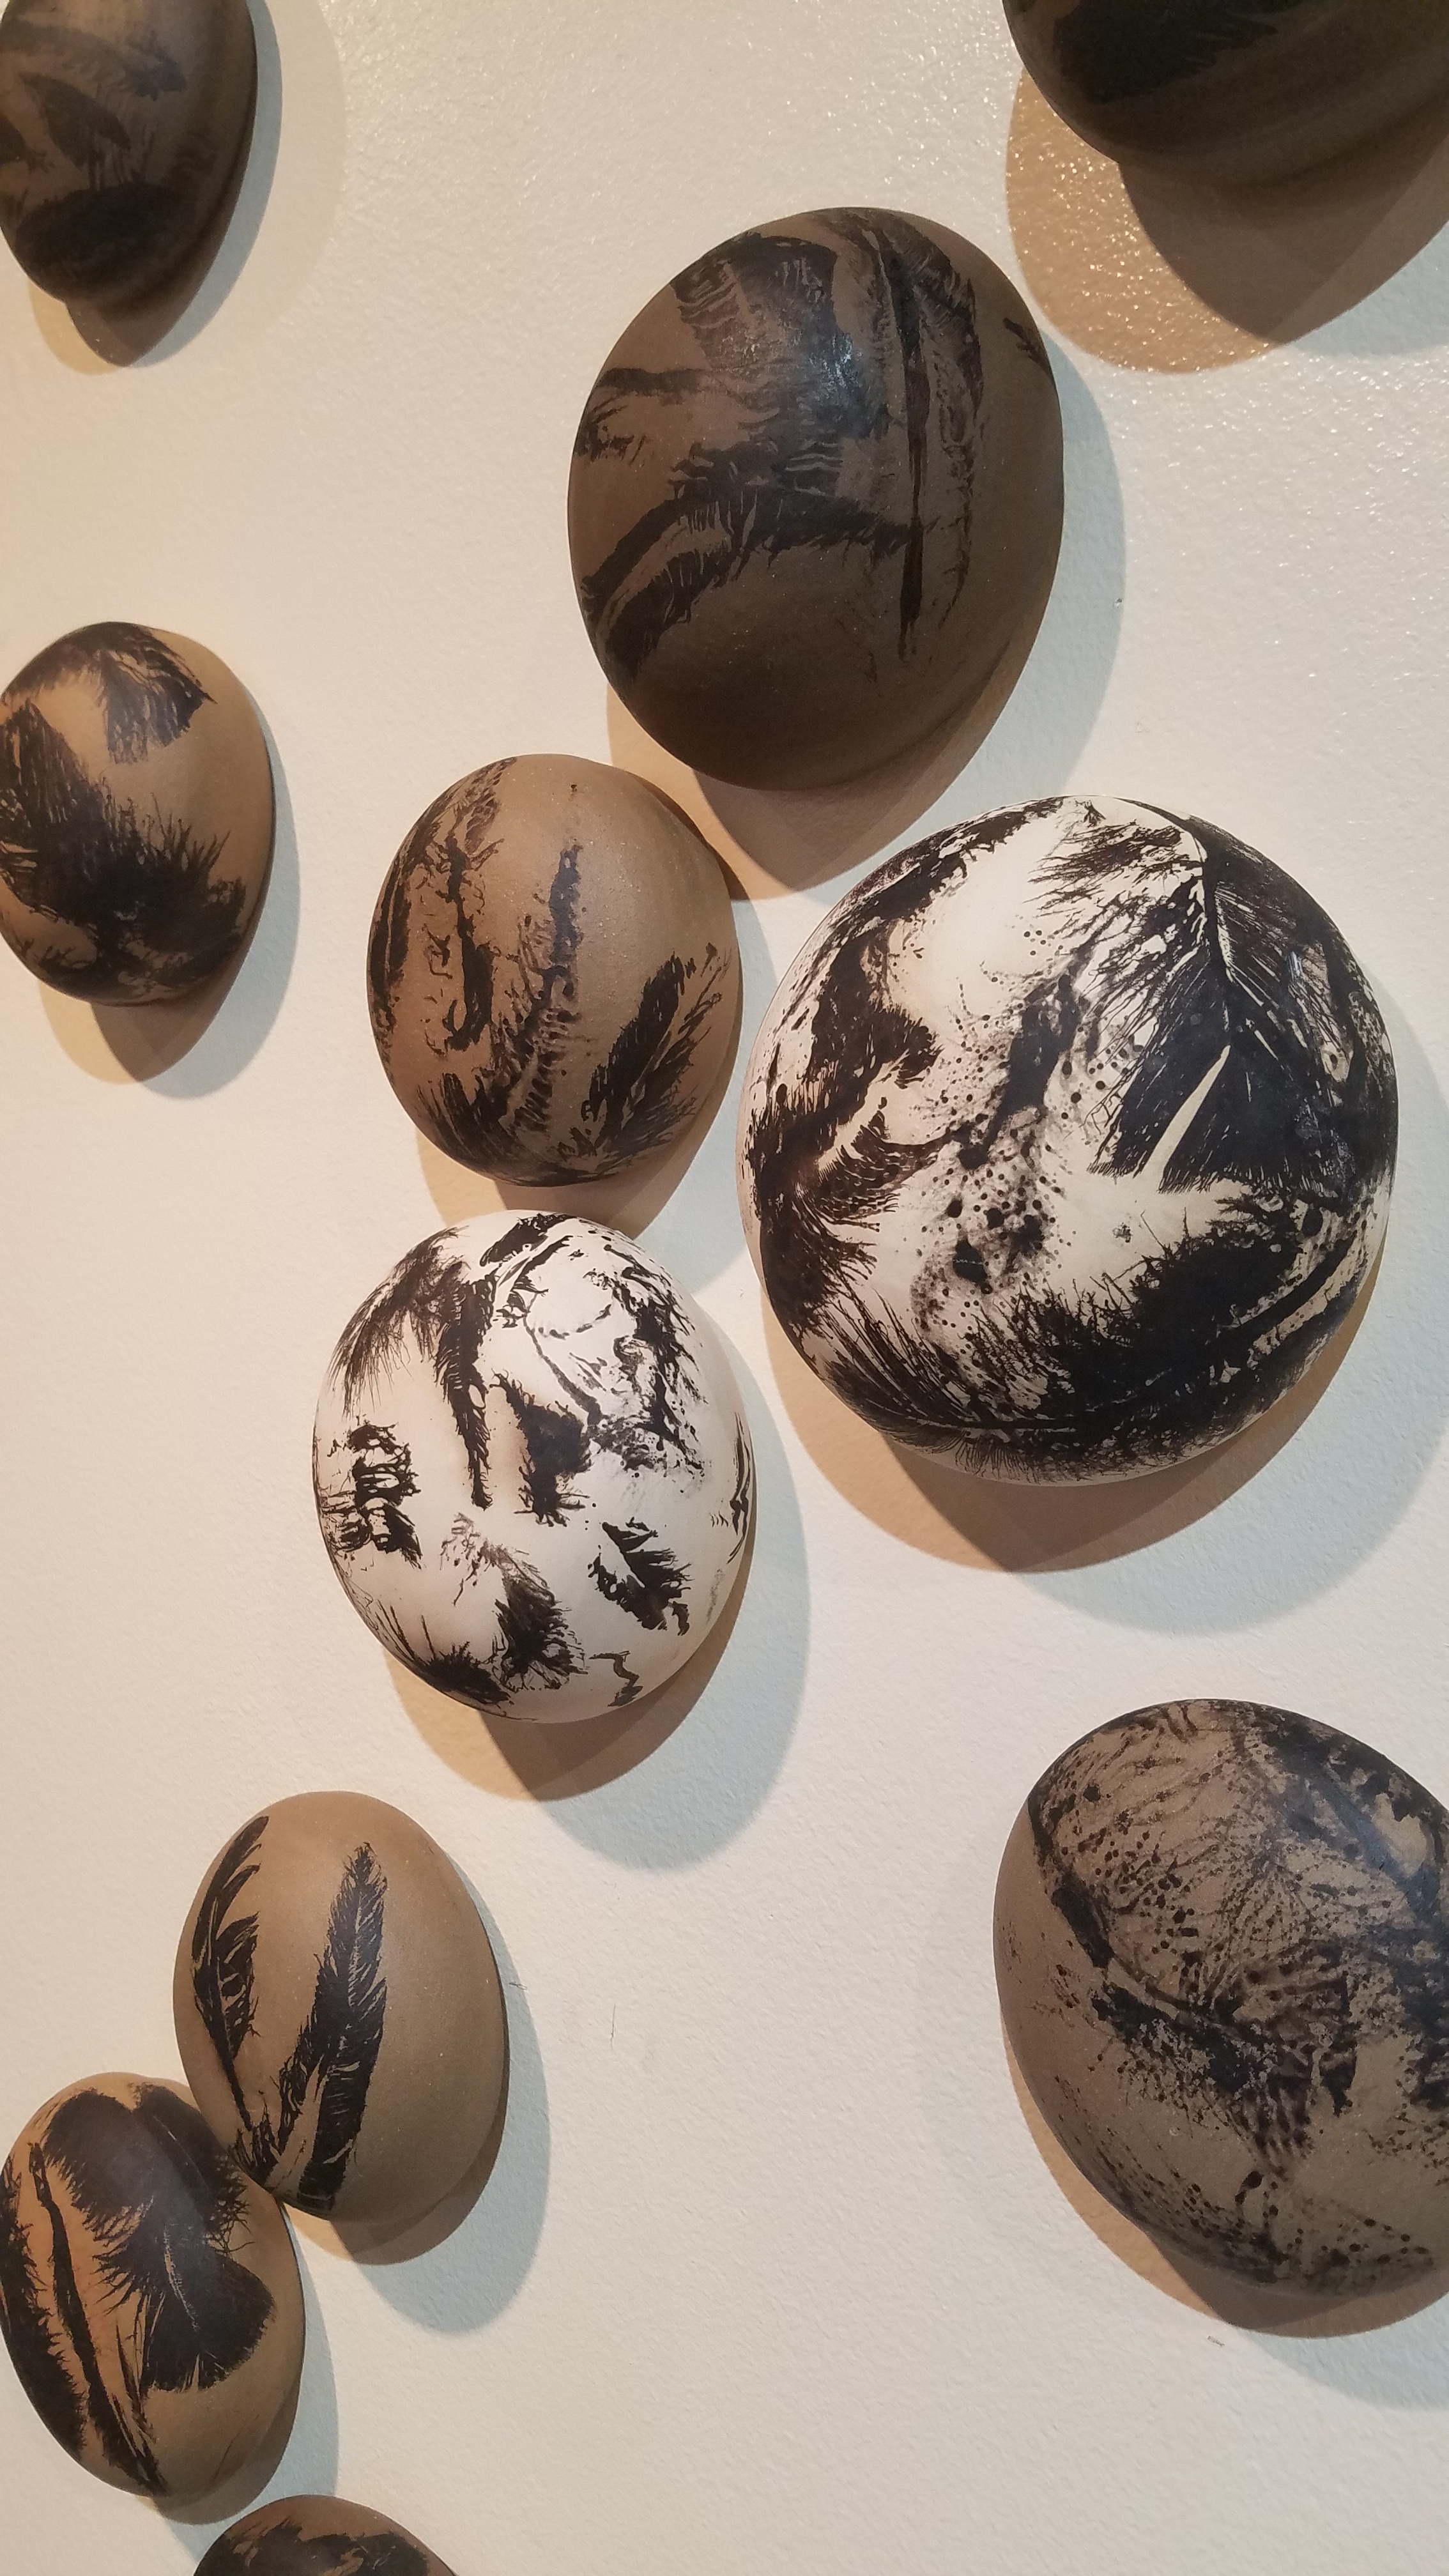 Anna Lee raku ceramics featuring carbon feather imprints